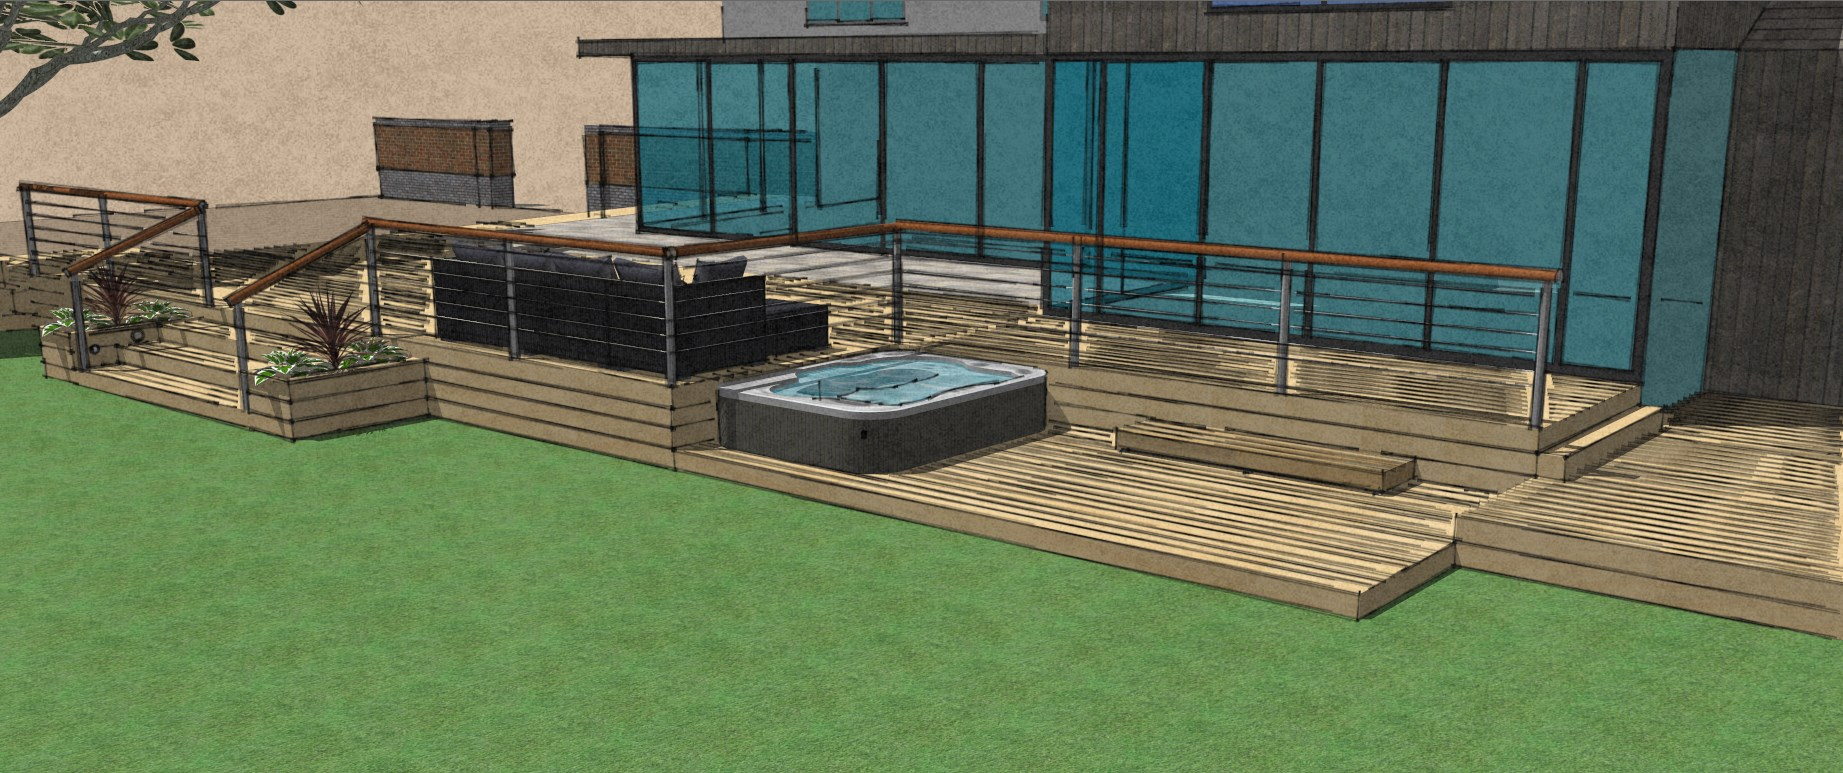 Raised composite decking